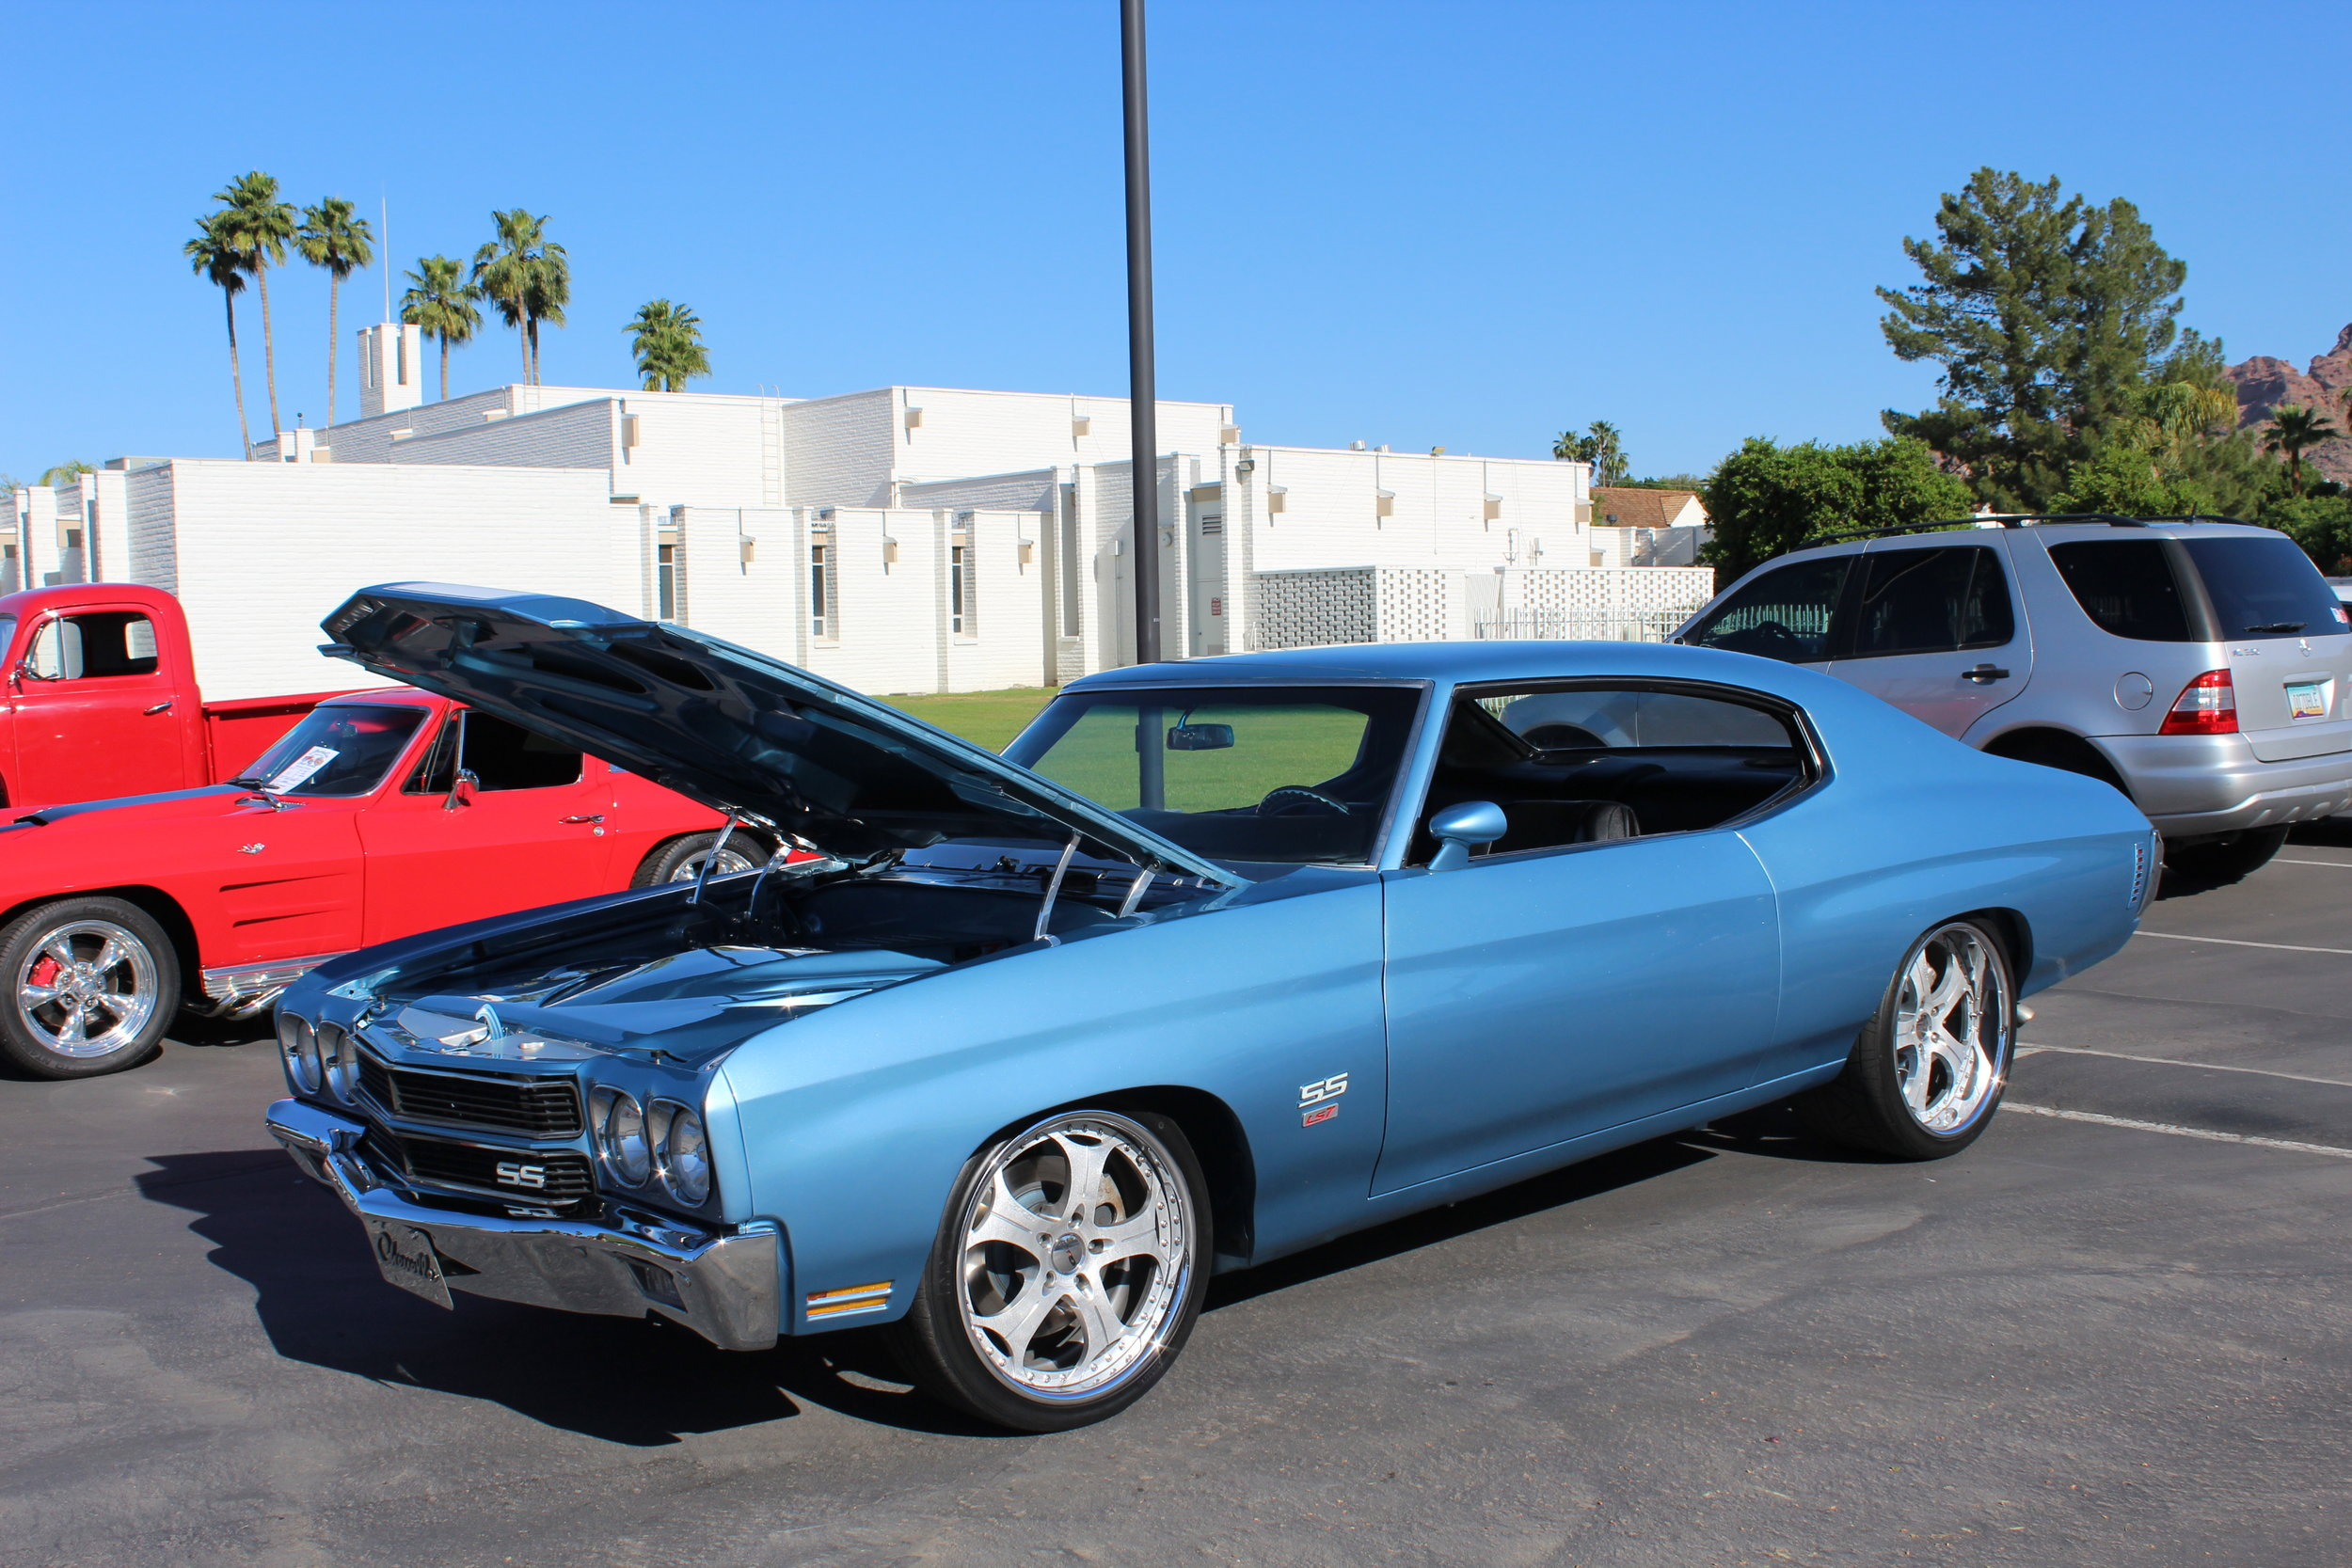 Colton Vercelli's 1970 Chevelle (see the You-Tube video below)